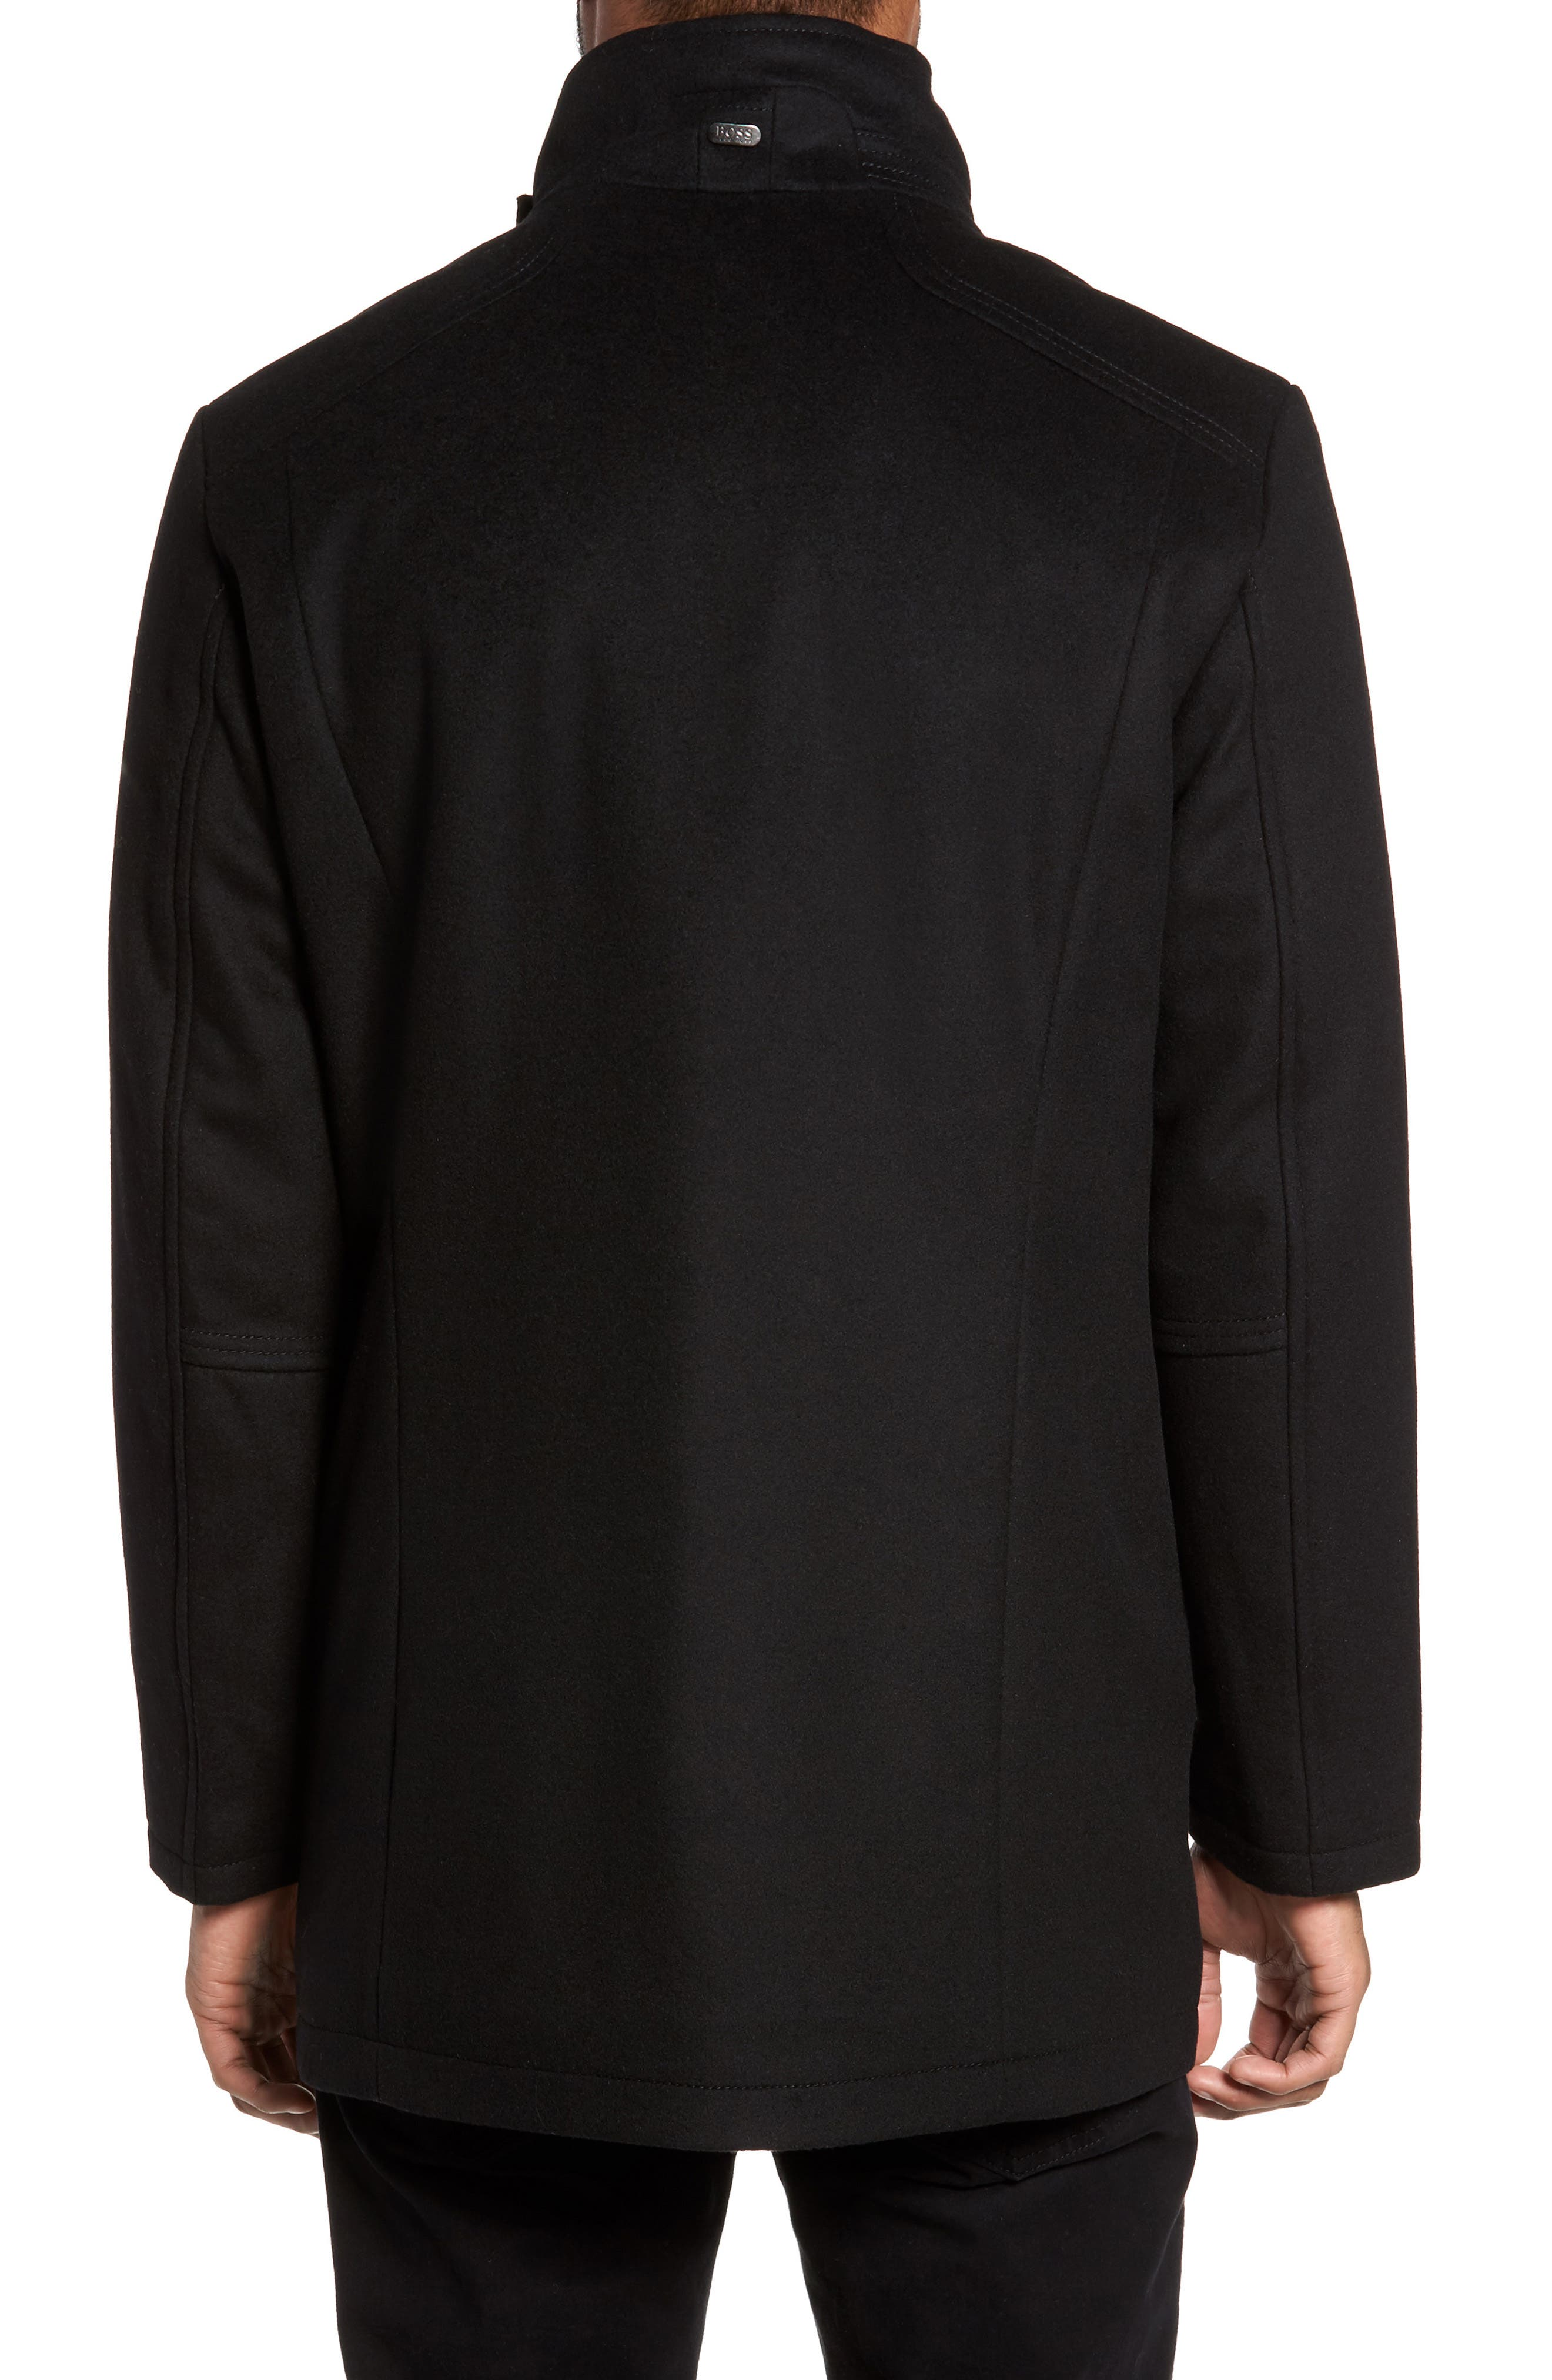 C-Coxtan Wool Blend Coat with Insert,                             Alternate thumbnail 2, color,                             Black